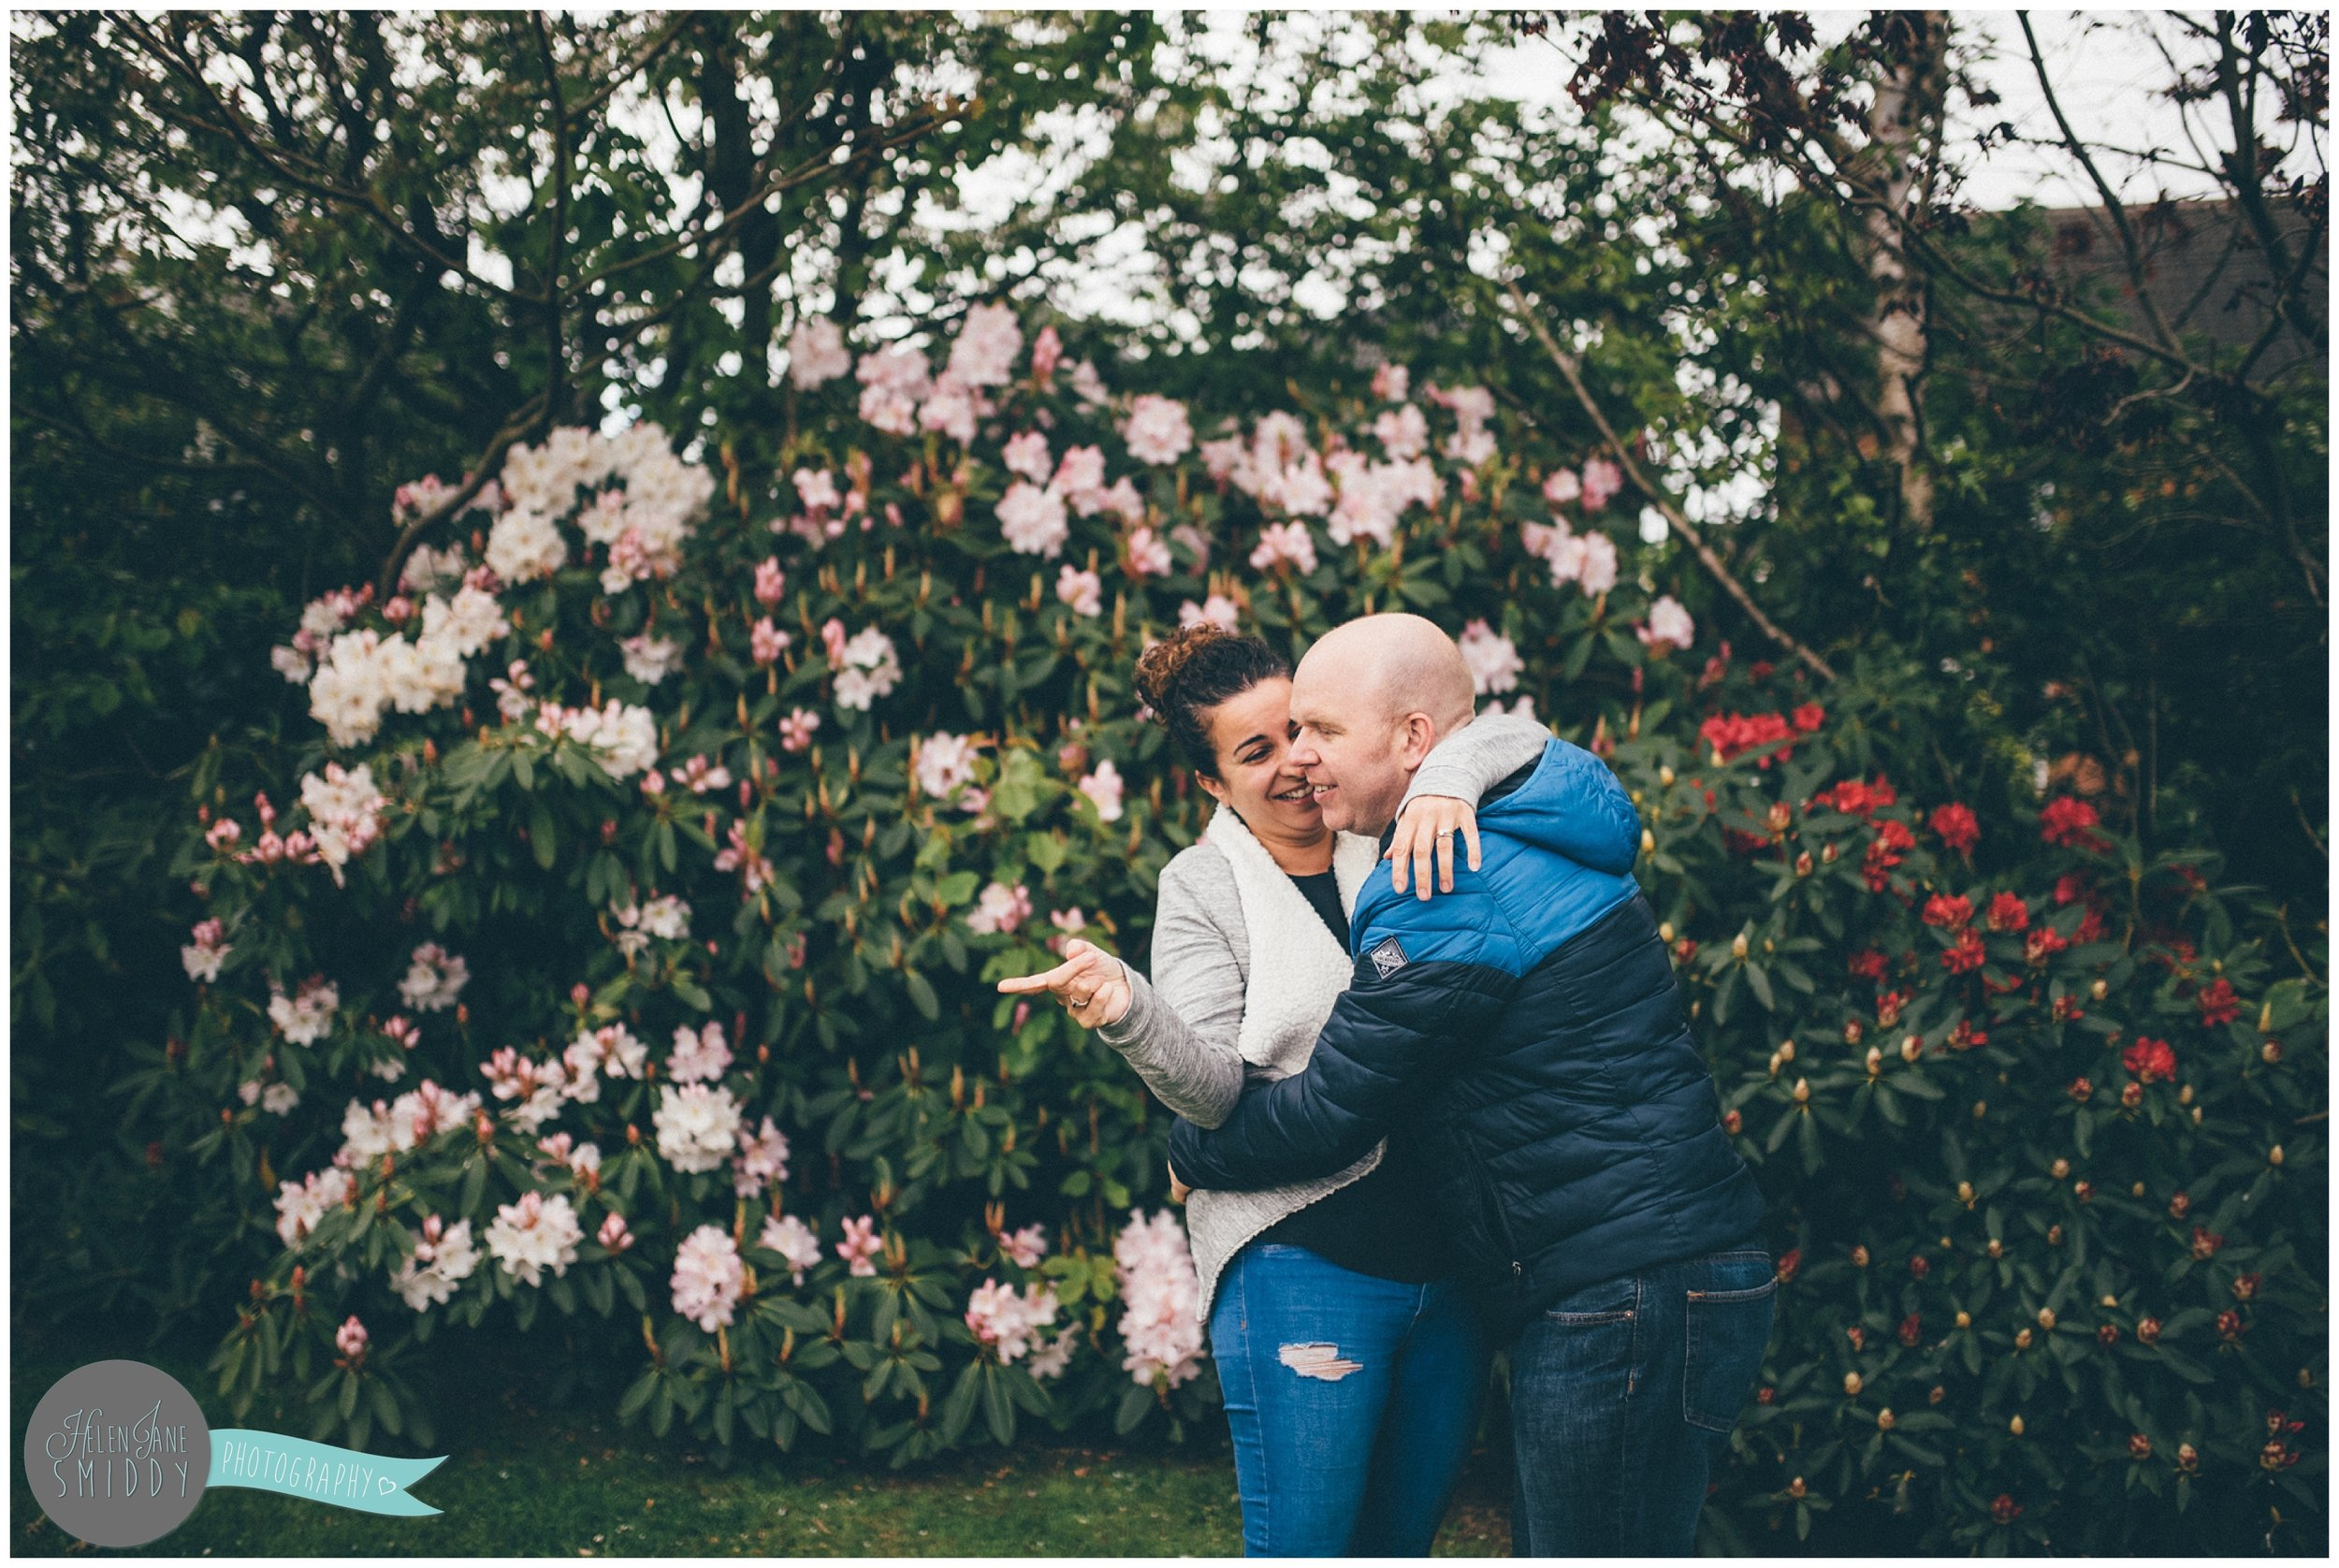 Family time in their Frodsham garden during an A Day In The Life photoshoot in Cheshire.